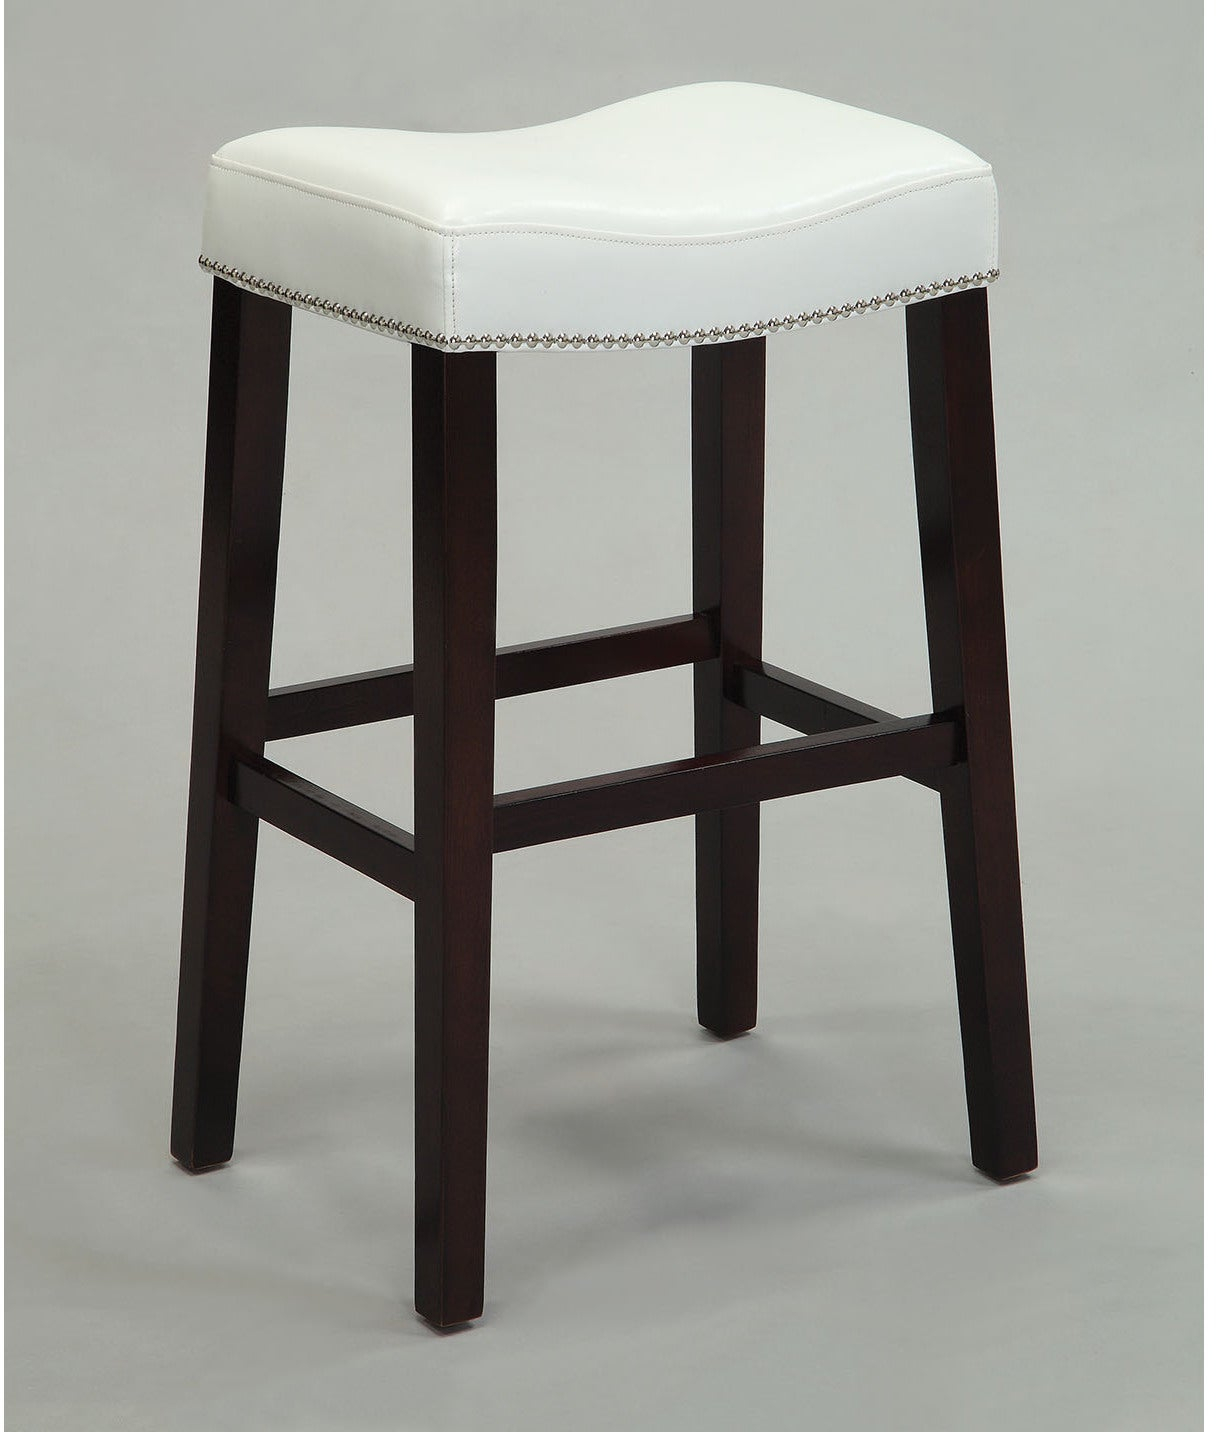 Details About Counter Stool White Saddle Style Seat Padded Faux Leather Espresso Wood 2 Pack